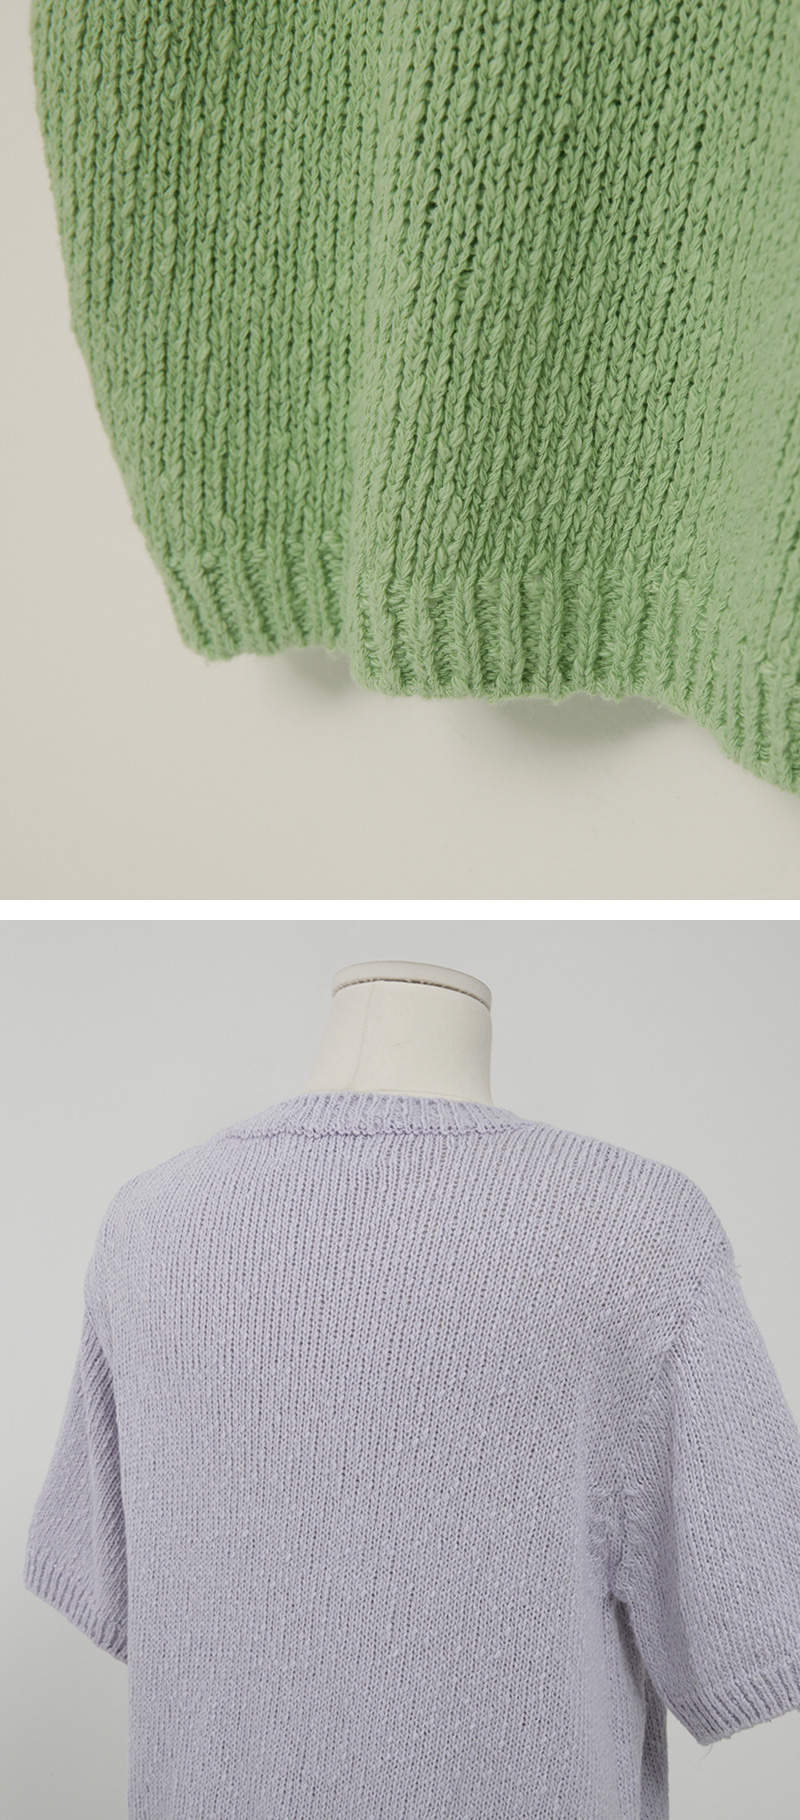 Cotton candy crop knit_S